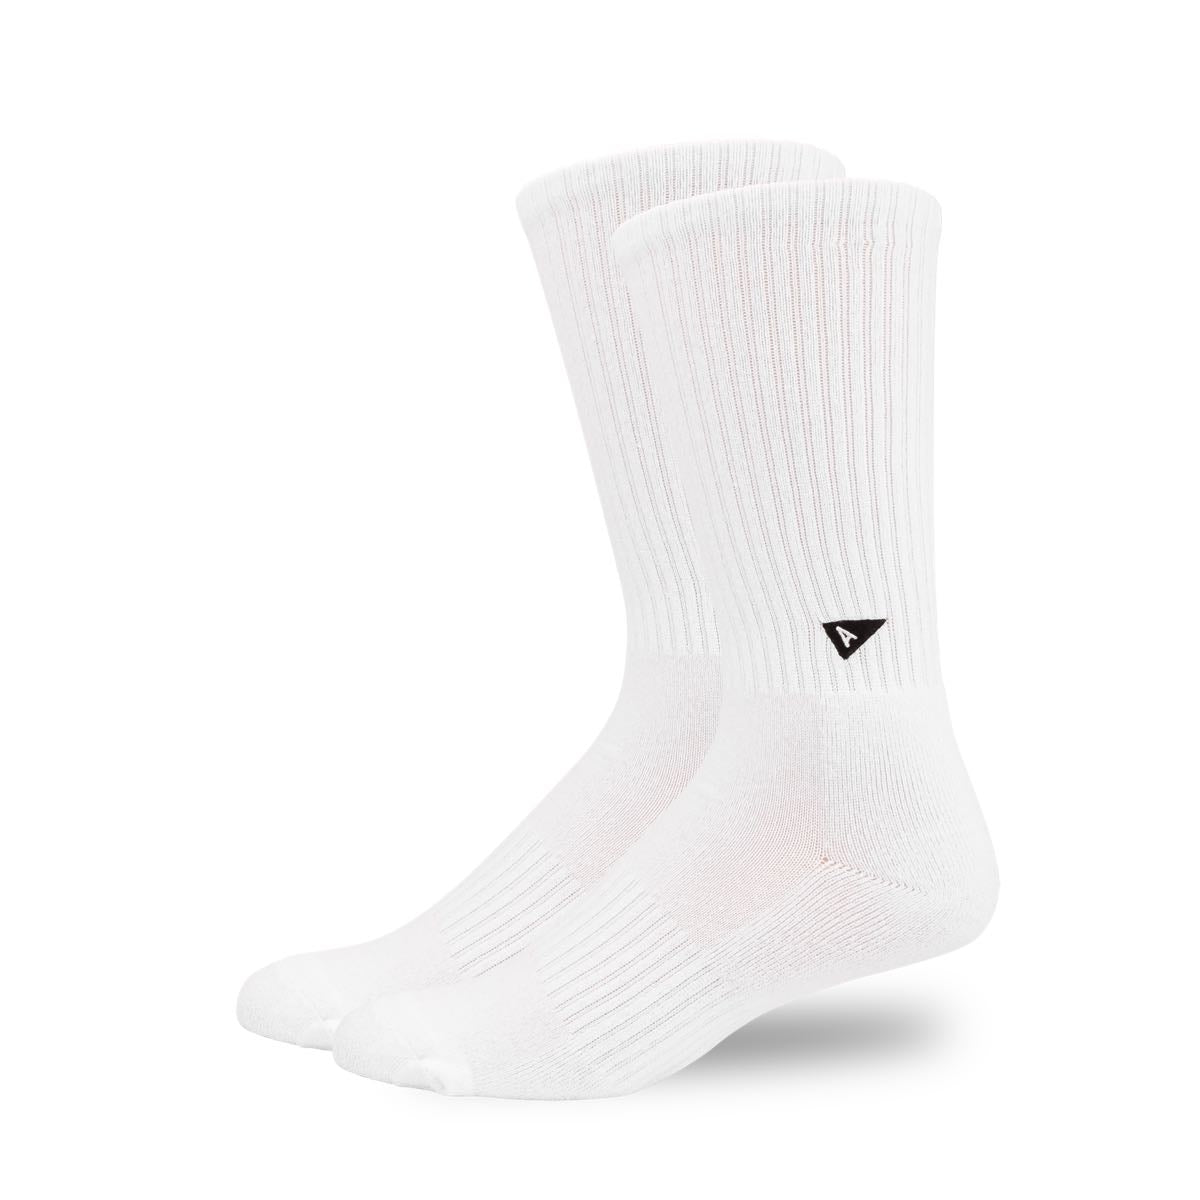 Arvin Goods Long Crew Socks - White image